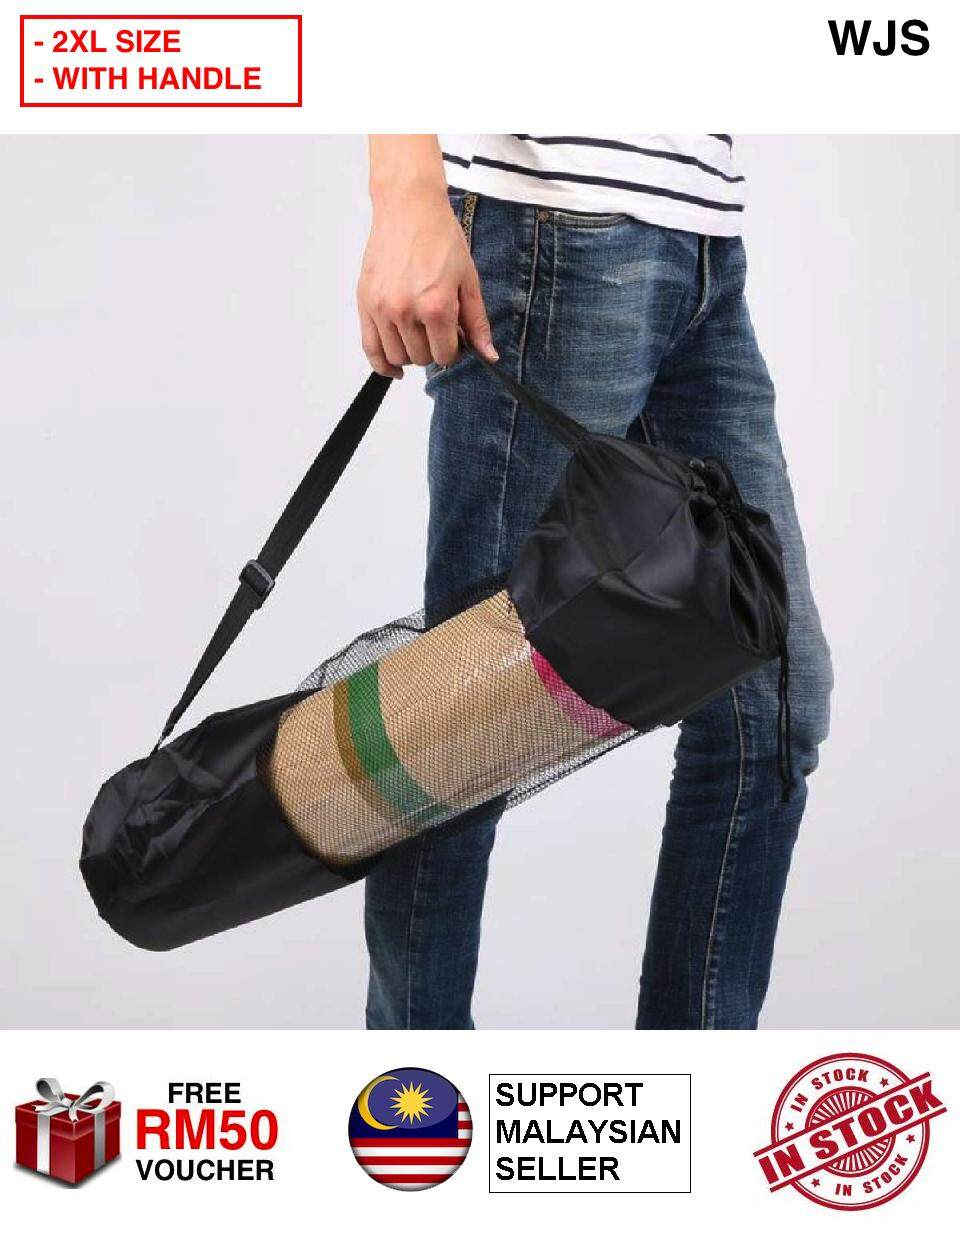 (LARGE SIZE WITH HANDLE) WJS Yoga Mat Bag Mesh Carrier Net Bag Yoga Bag Yoga Carrier Gym Bag Beg Yoga Netting Bag BLACK [FREE RM 50 VOUCHER]